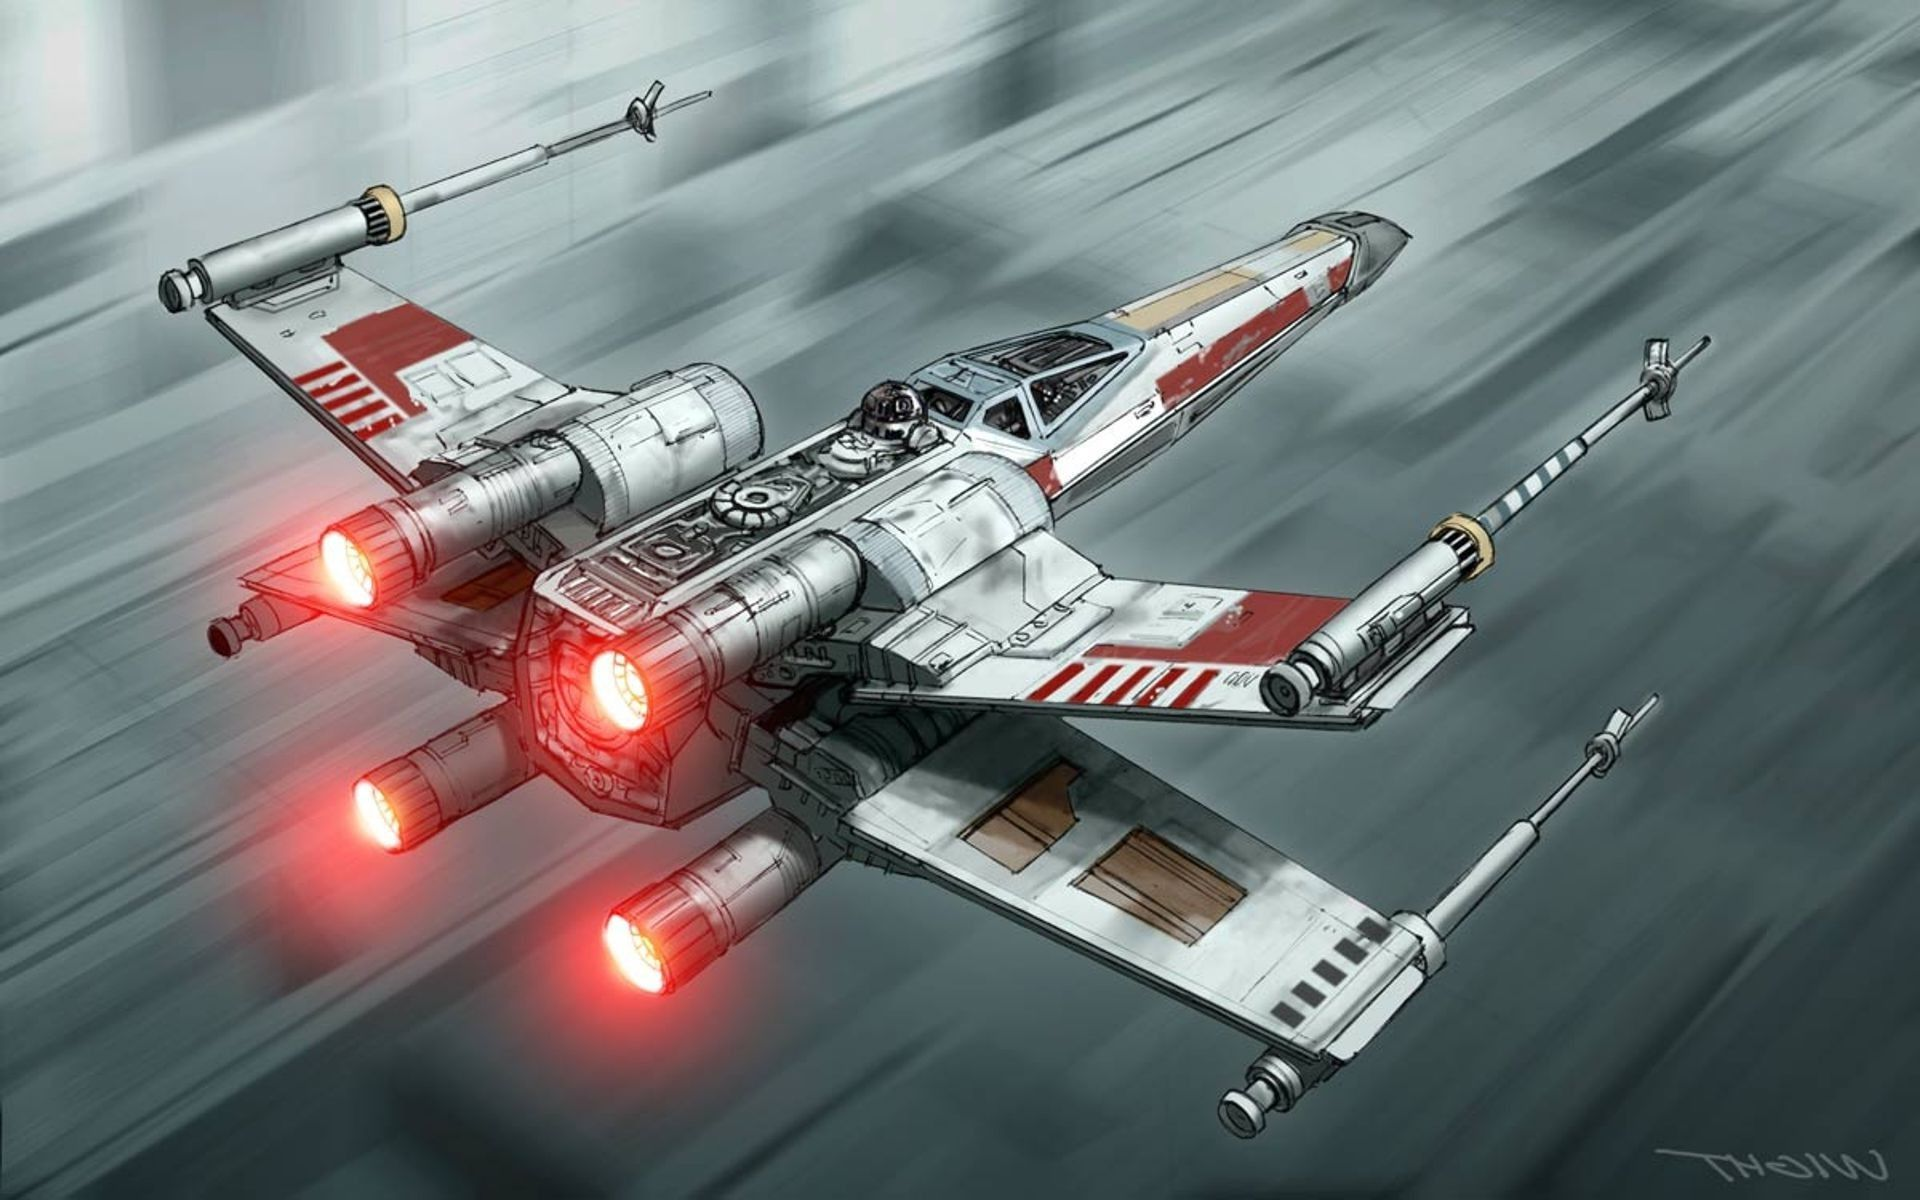 Xwing Starfighter Star Wars Fan Art Hd Wallpaper Wallpapersbyte Wings Wallpaper Star Wars Mural Star Wars Poster